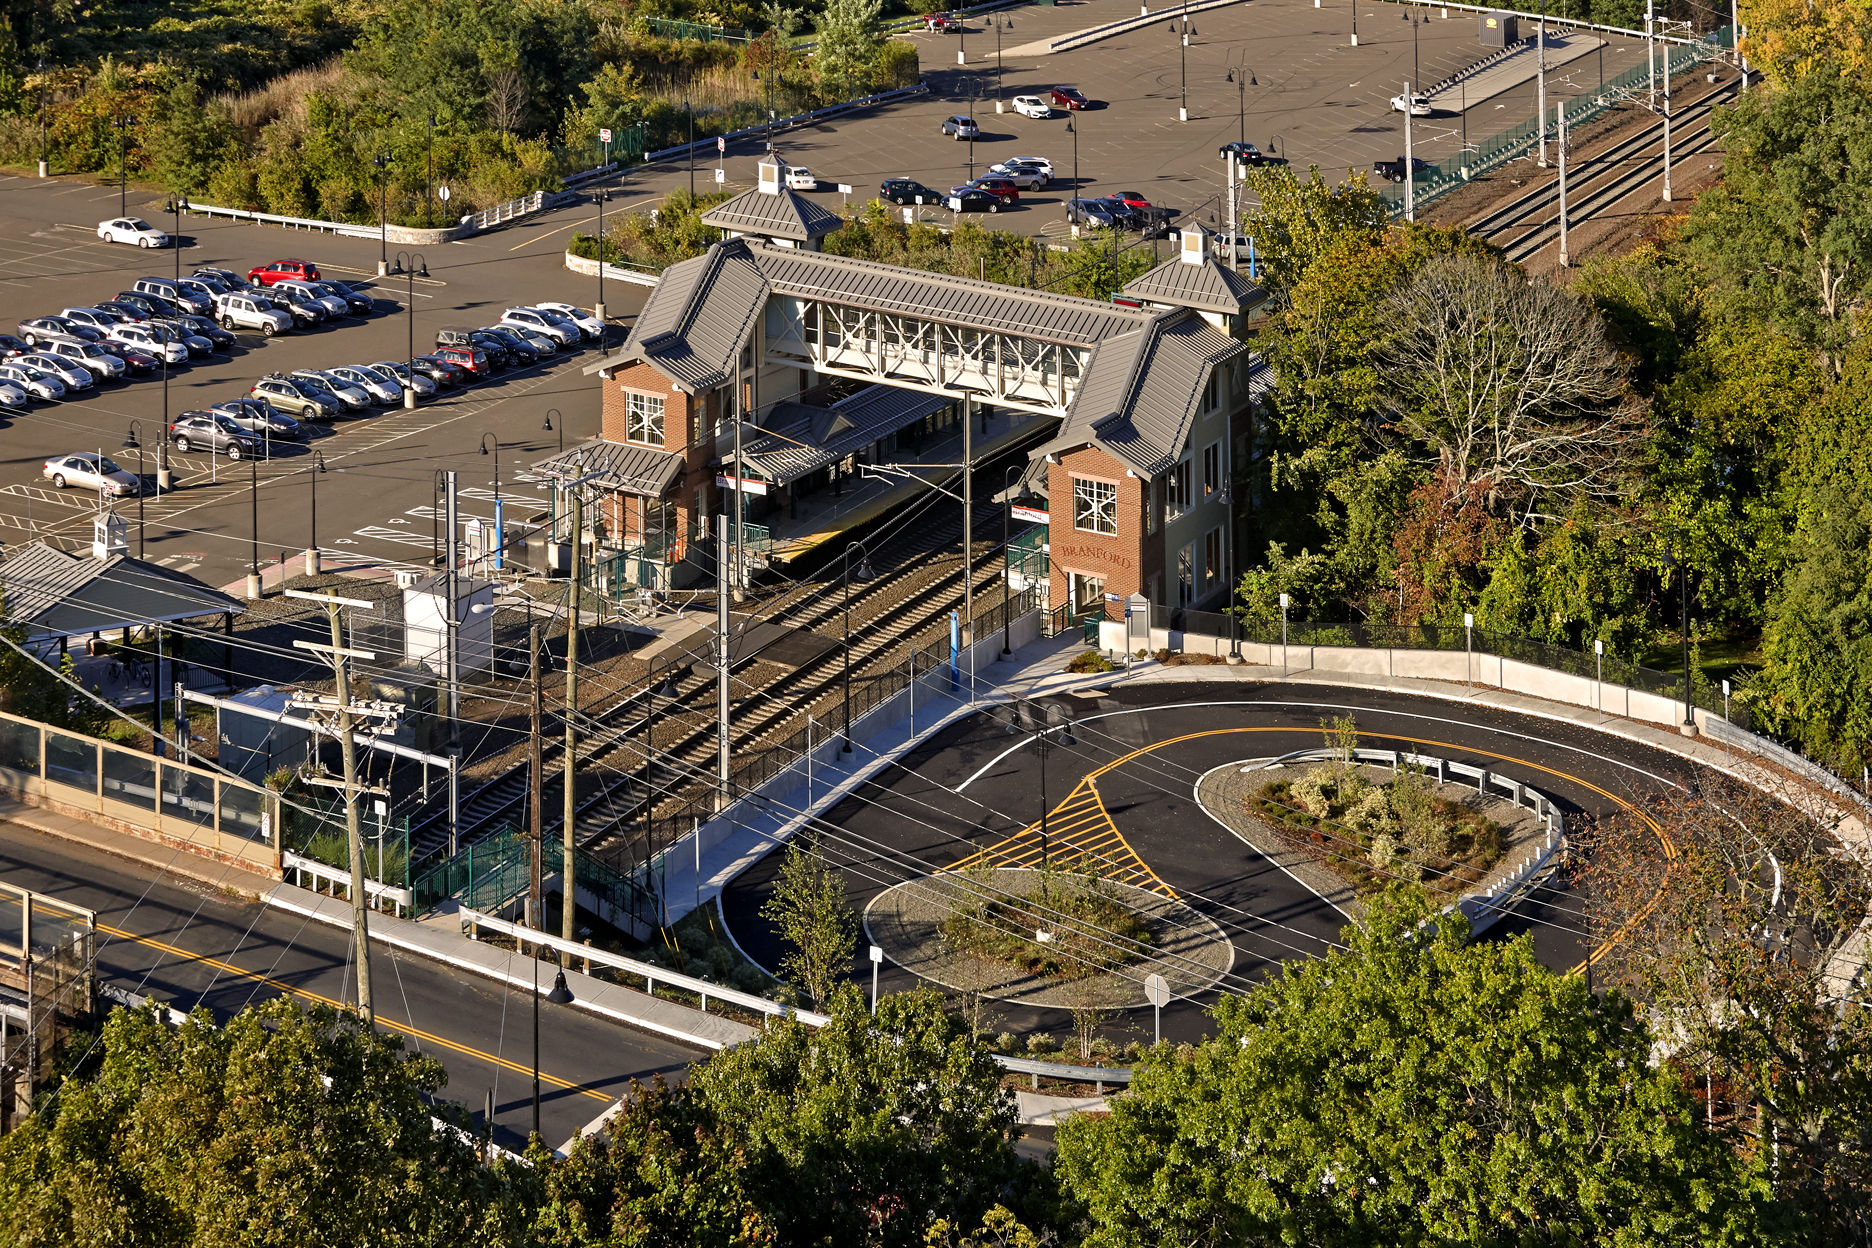 Branford Train Station